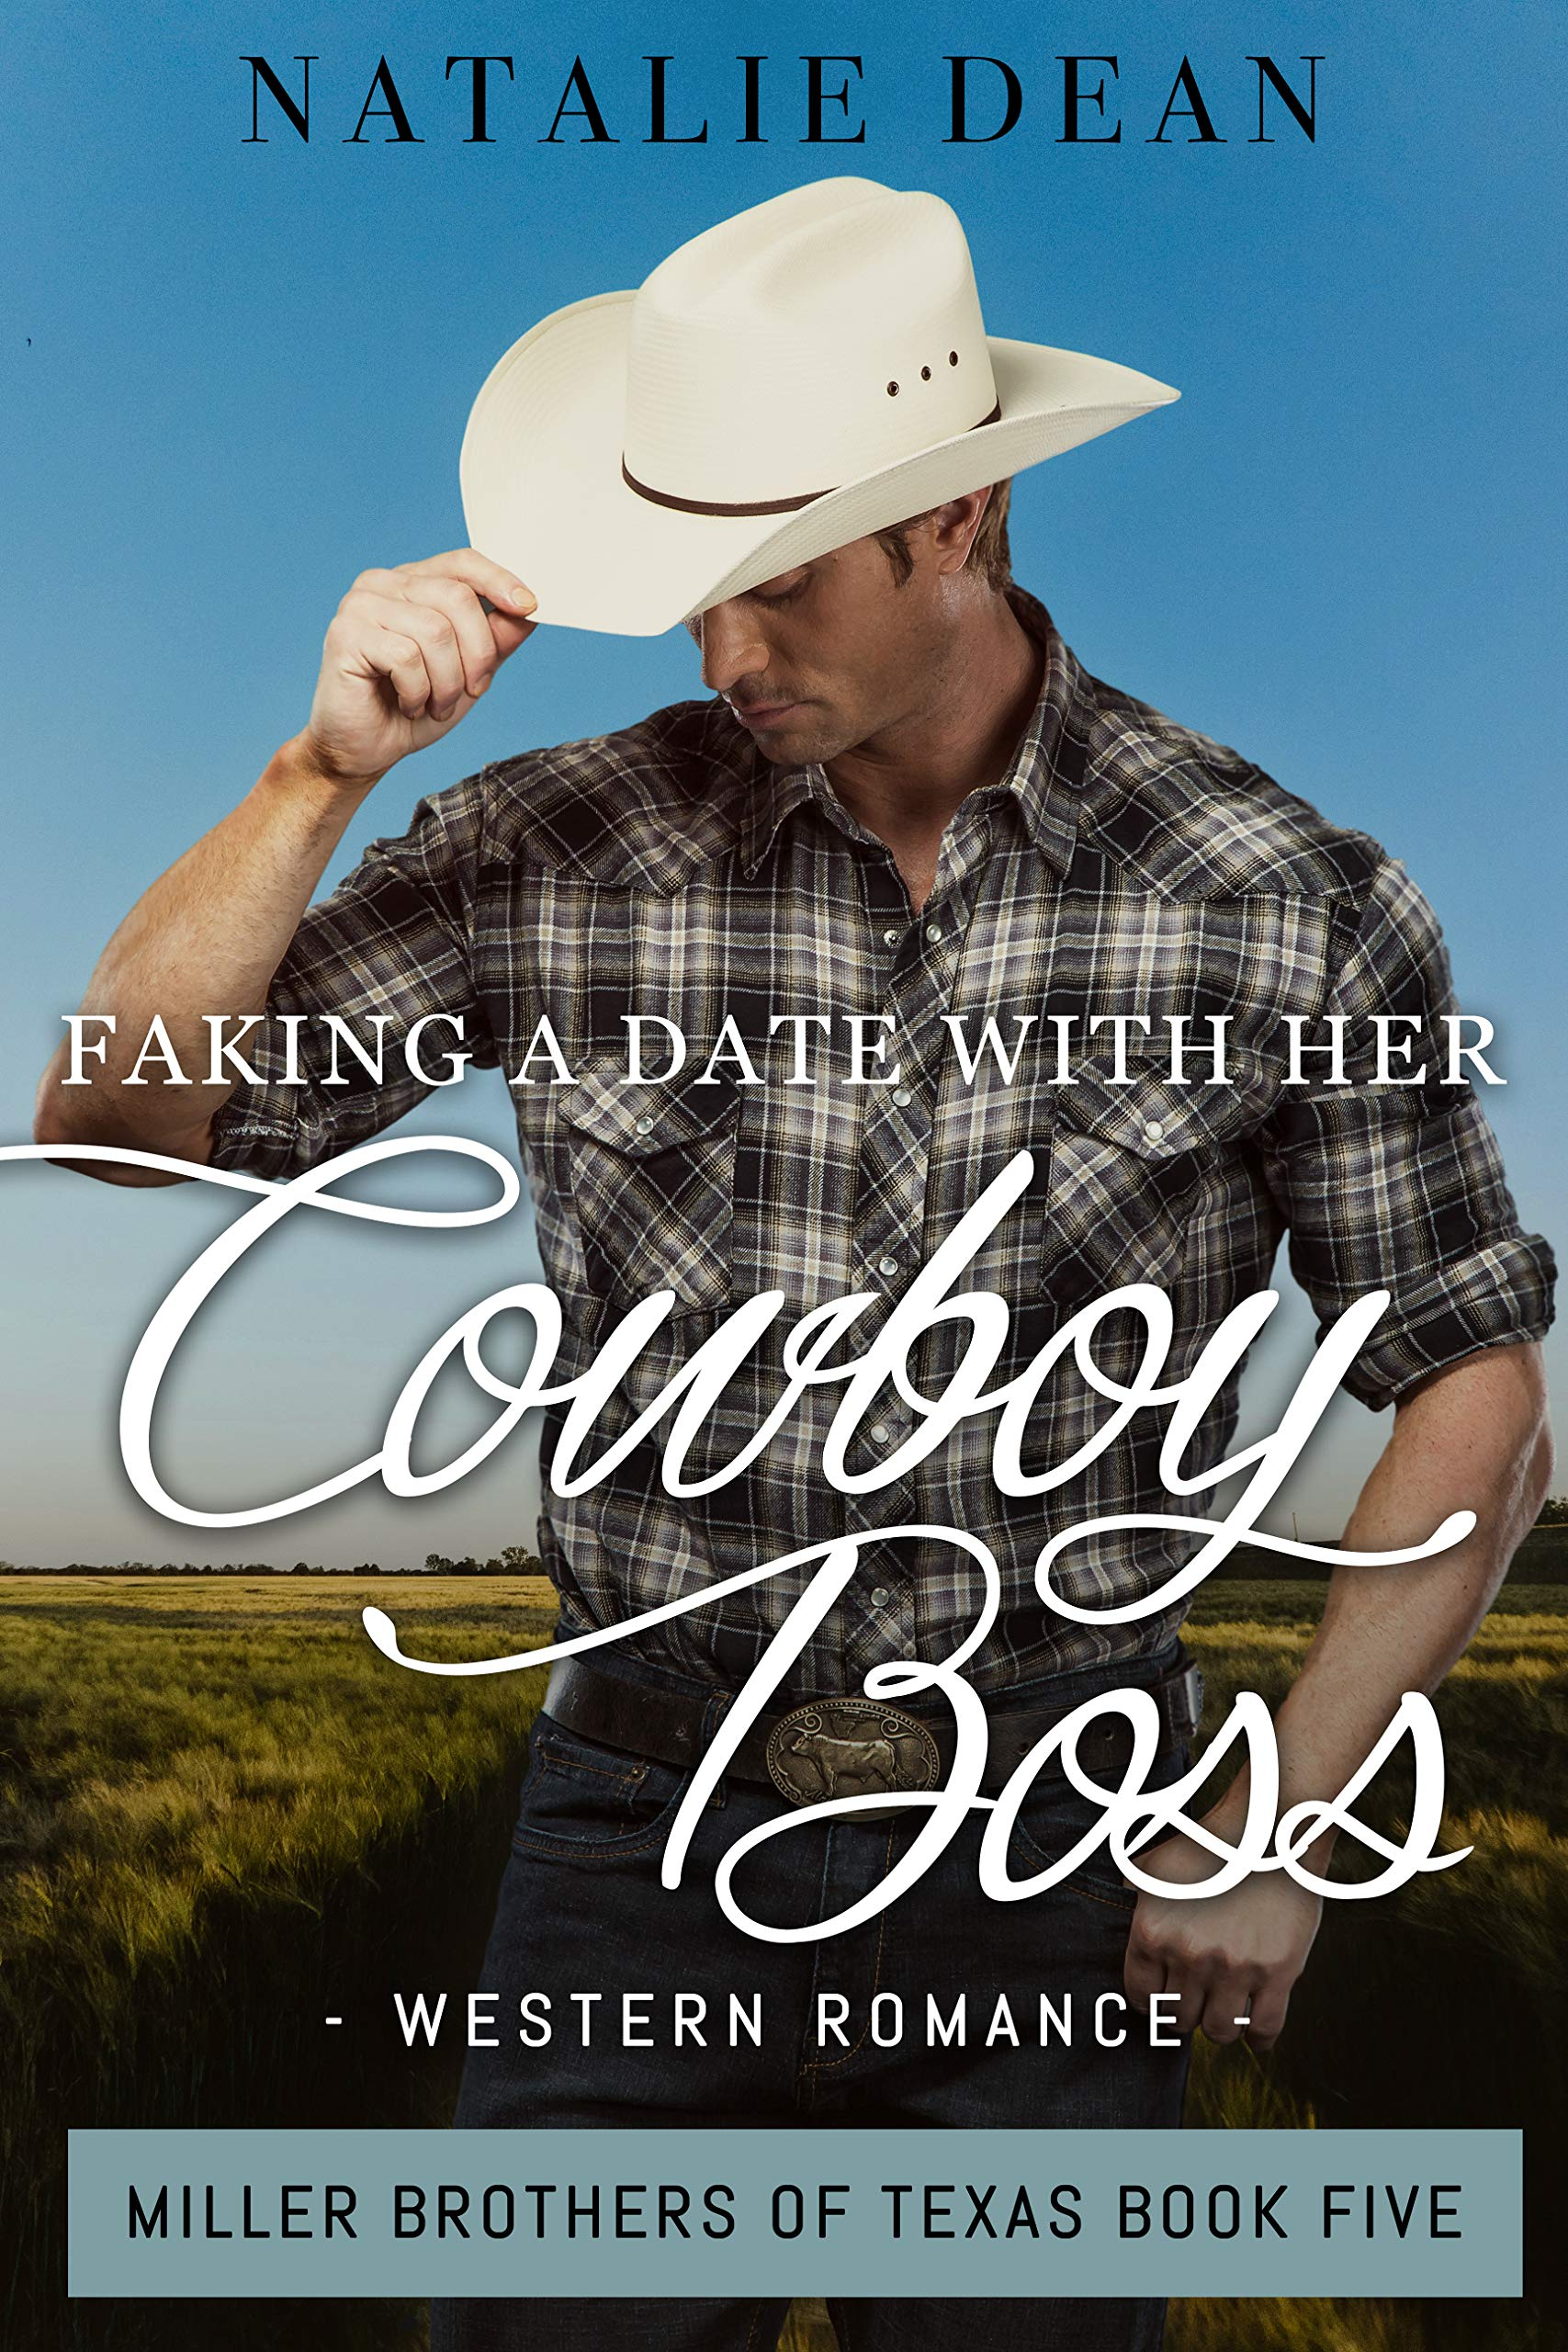 Faking a Date with Her Cowboy Boss (Miller Brothers of Texas #5)